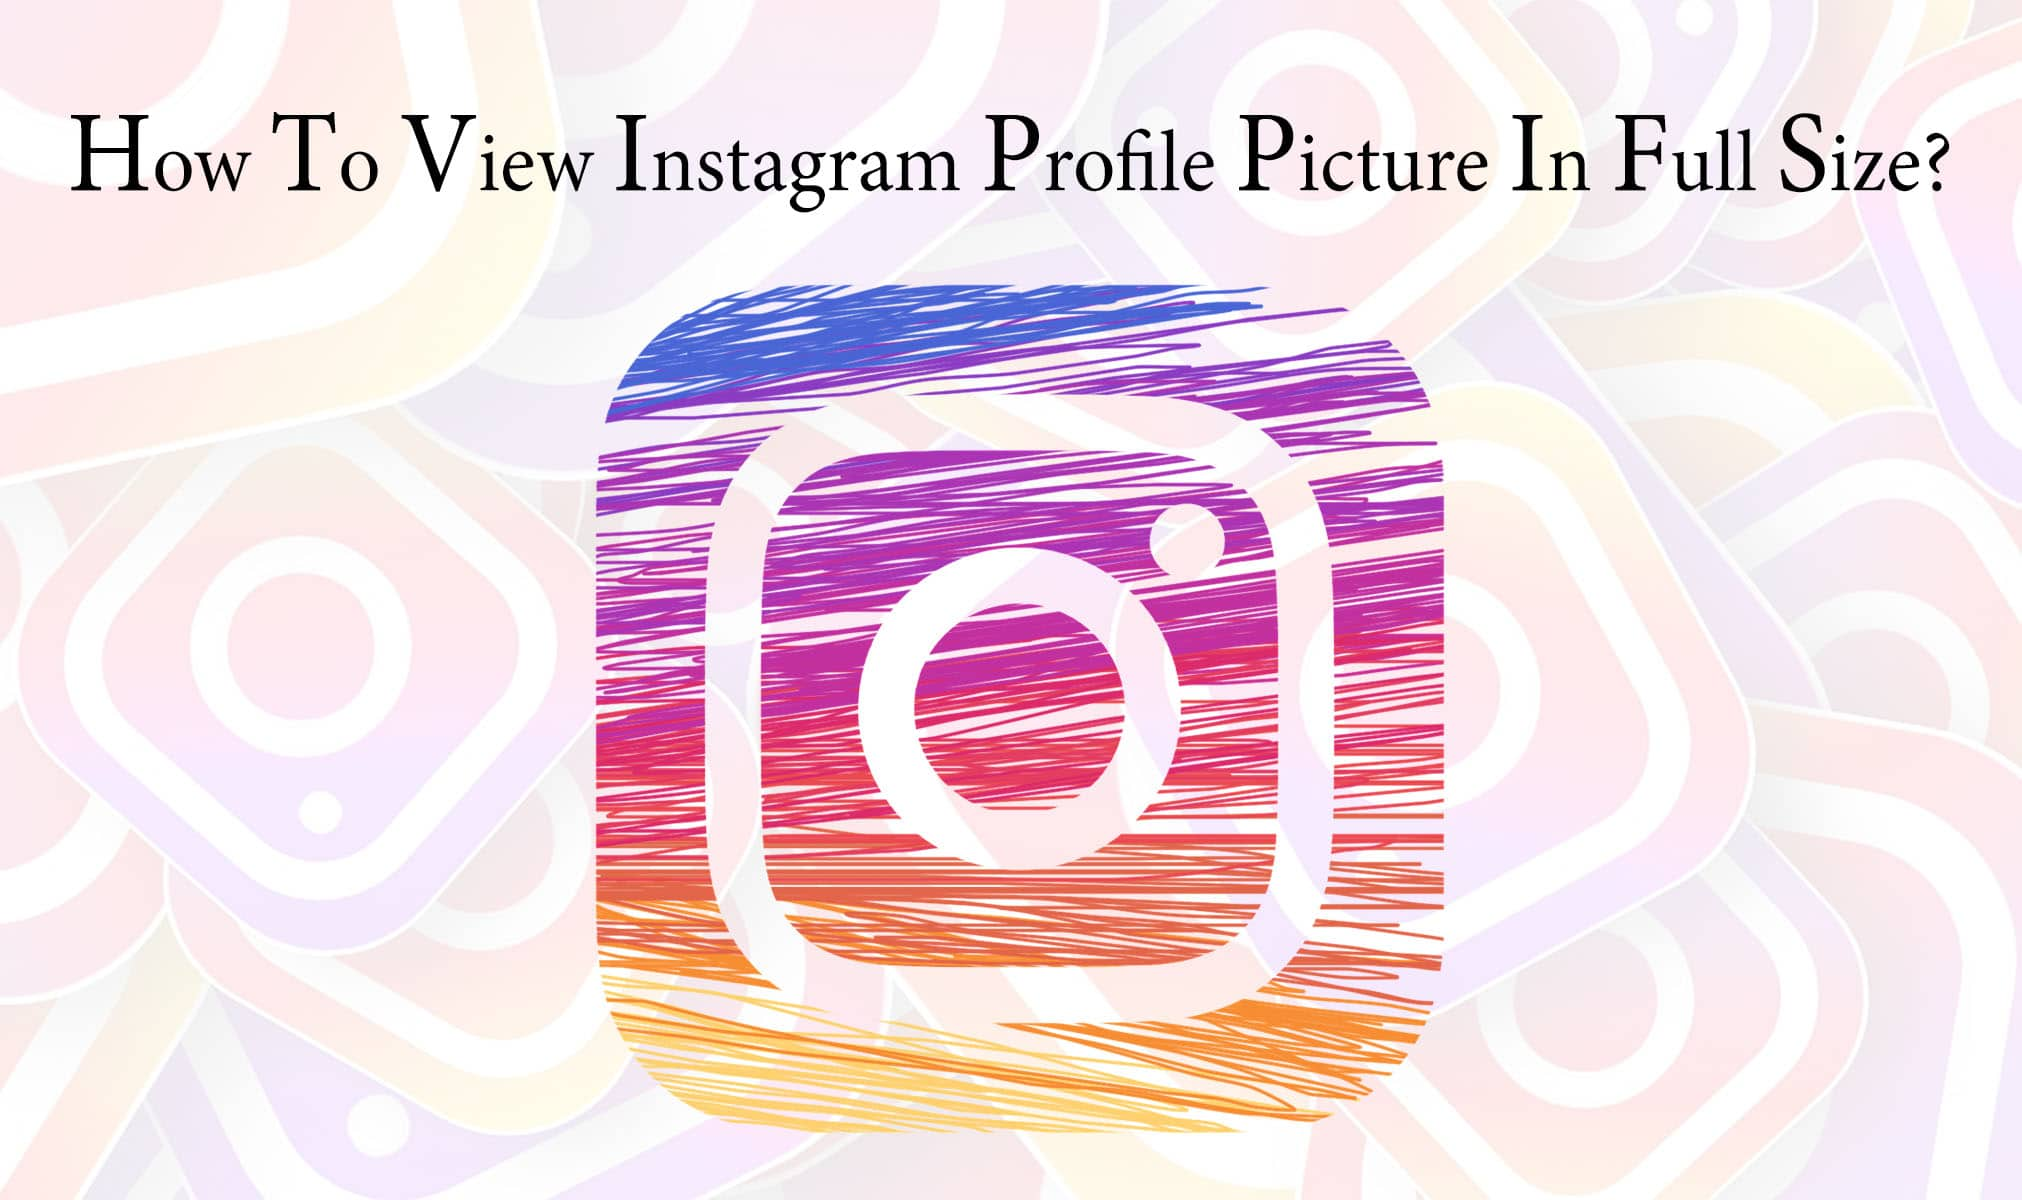 View Instagram Profile Picture In Full Size